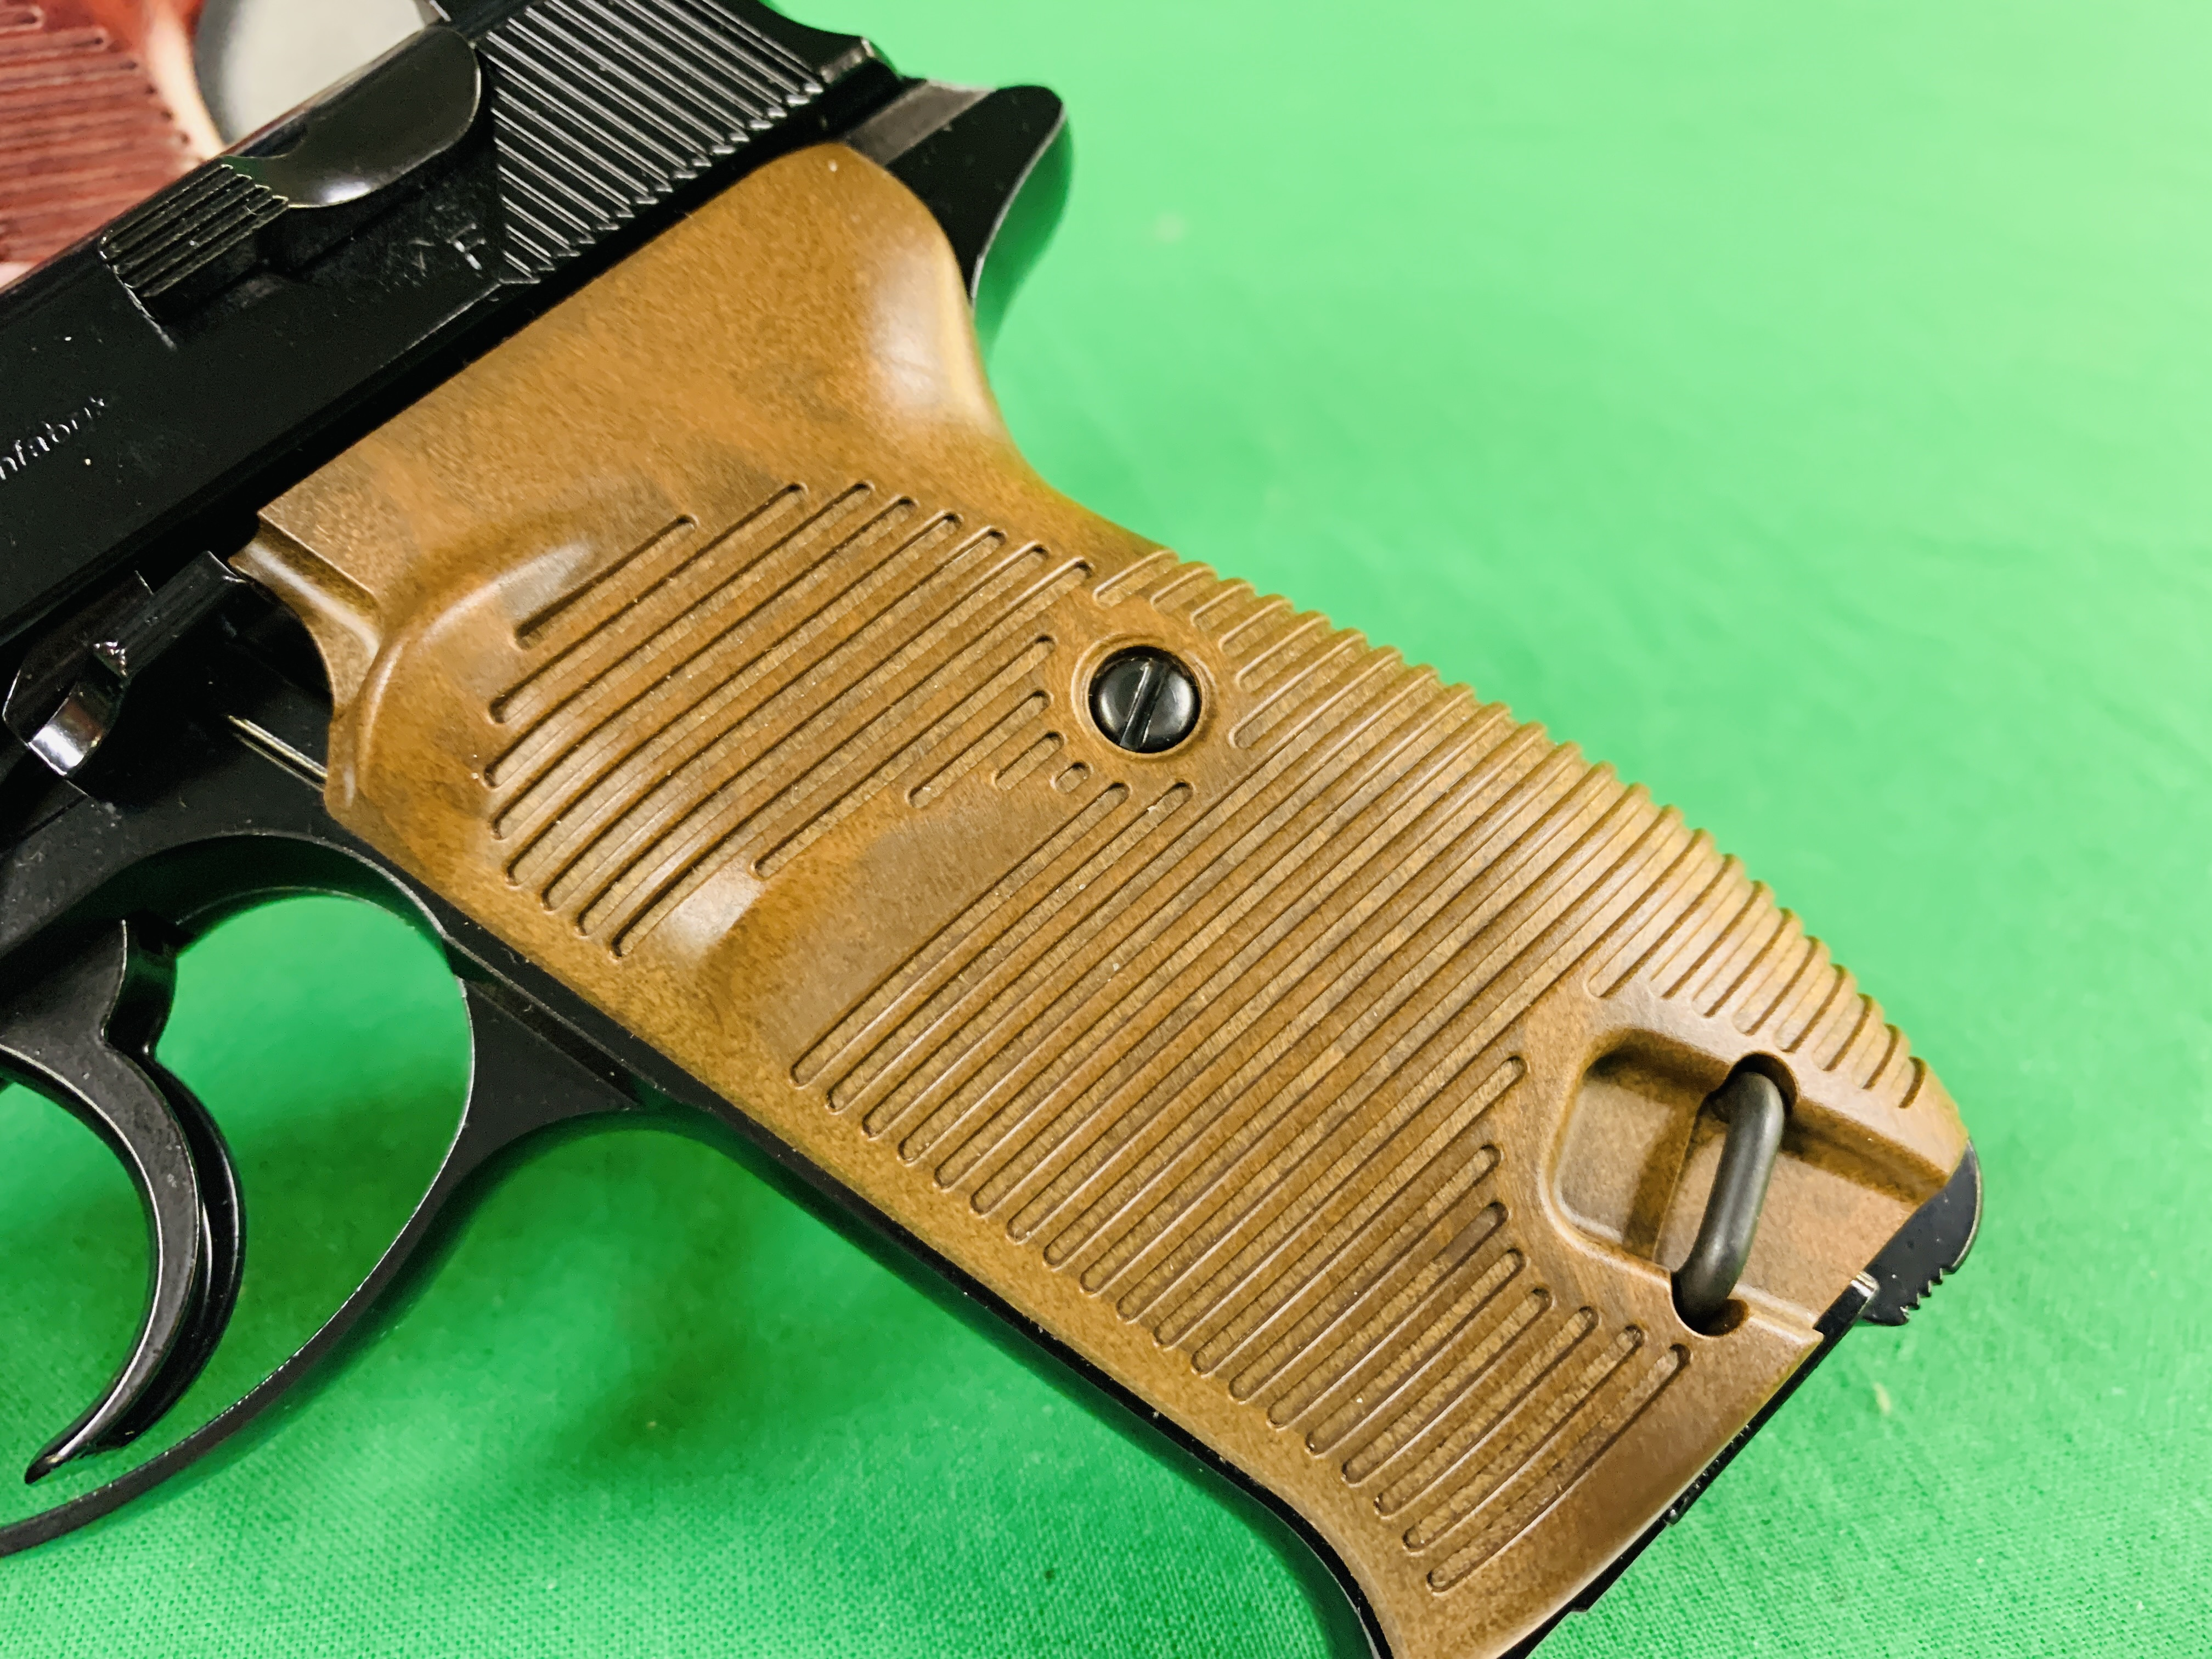 A WALTHER P38 . - Image 6 of 9